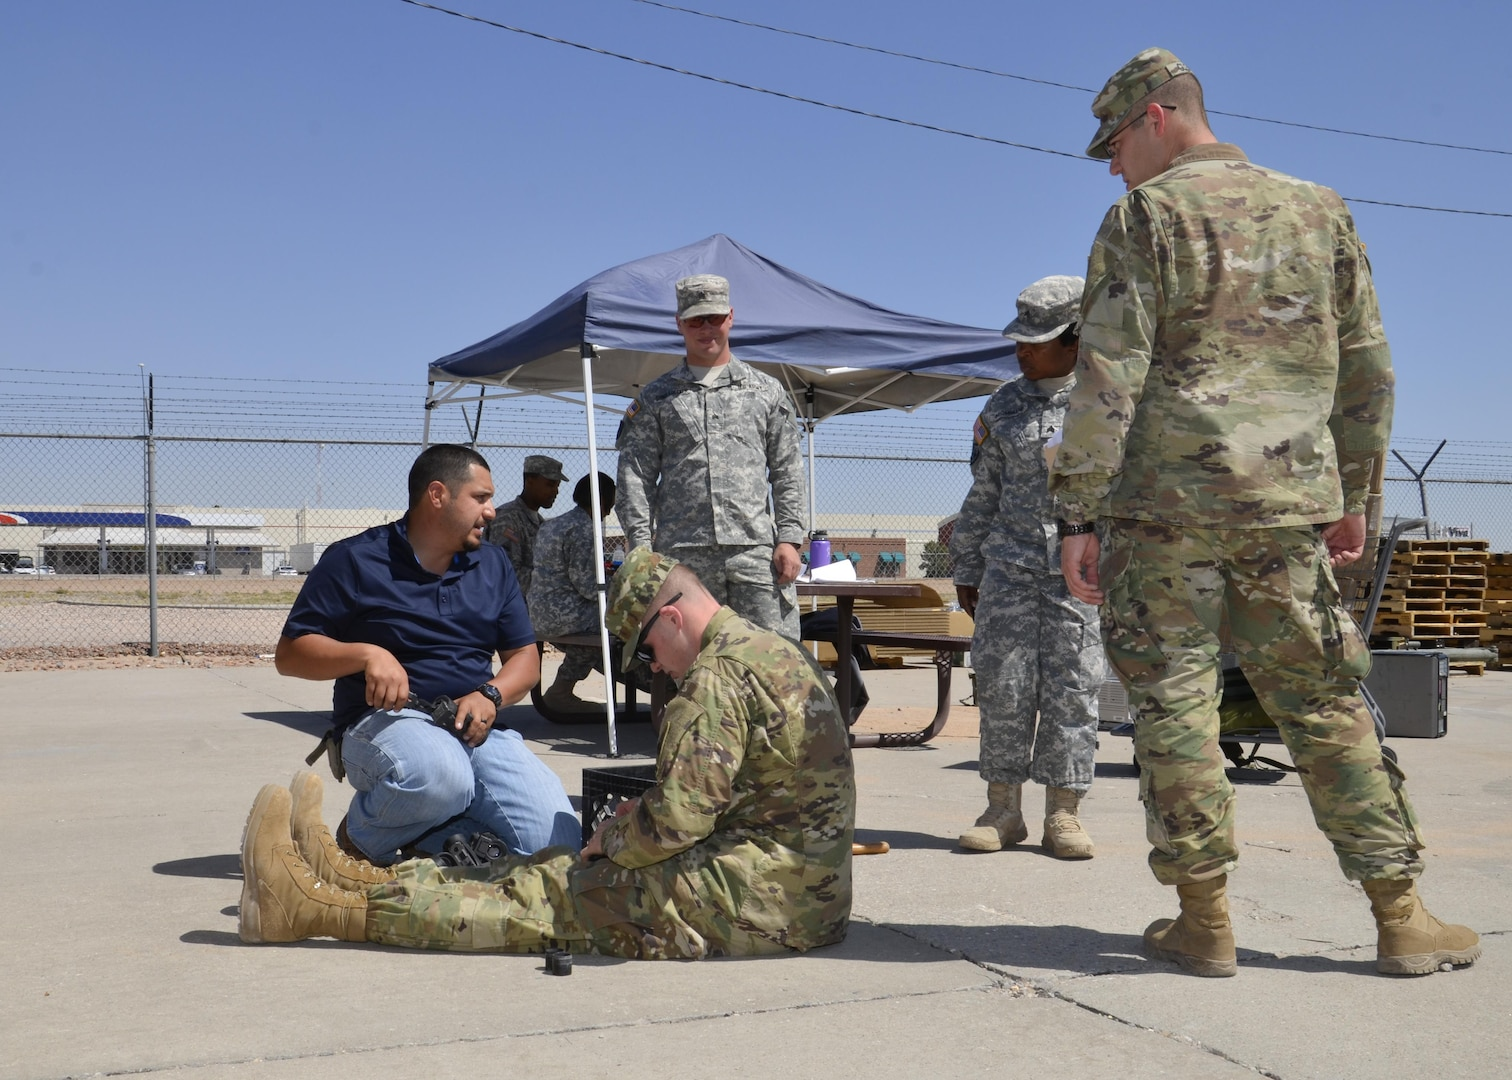 Ray Menendez (blue shirt) a material examiner at DLA Disposition Services Fort Bliss, Texas. Helps a solider with items he is turning in for disposal while soldiers from other units ask Menendez questions concerning the property they are turning in.